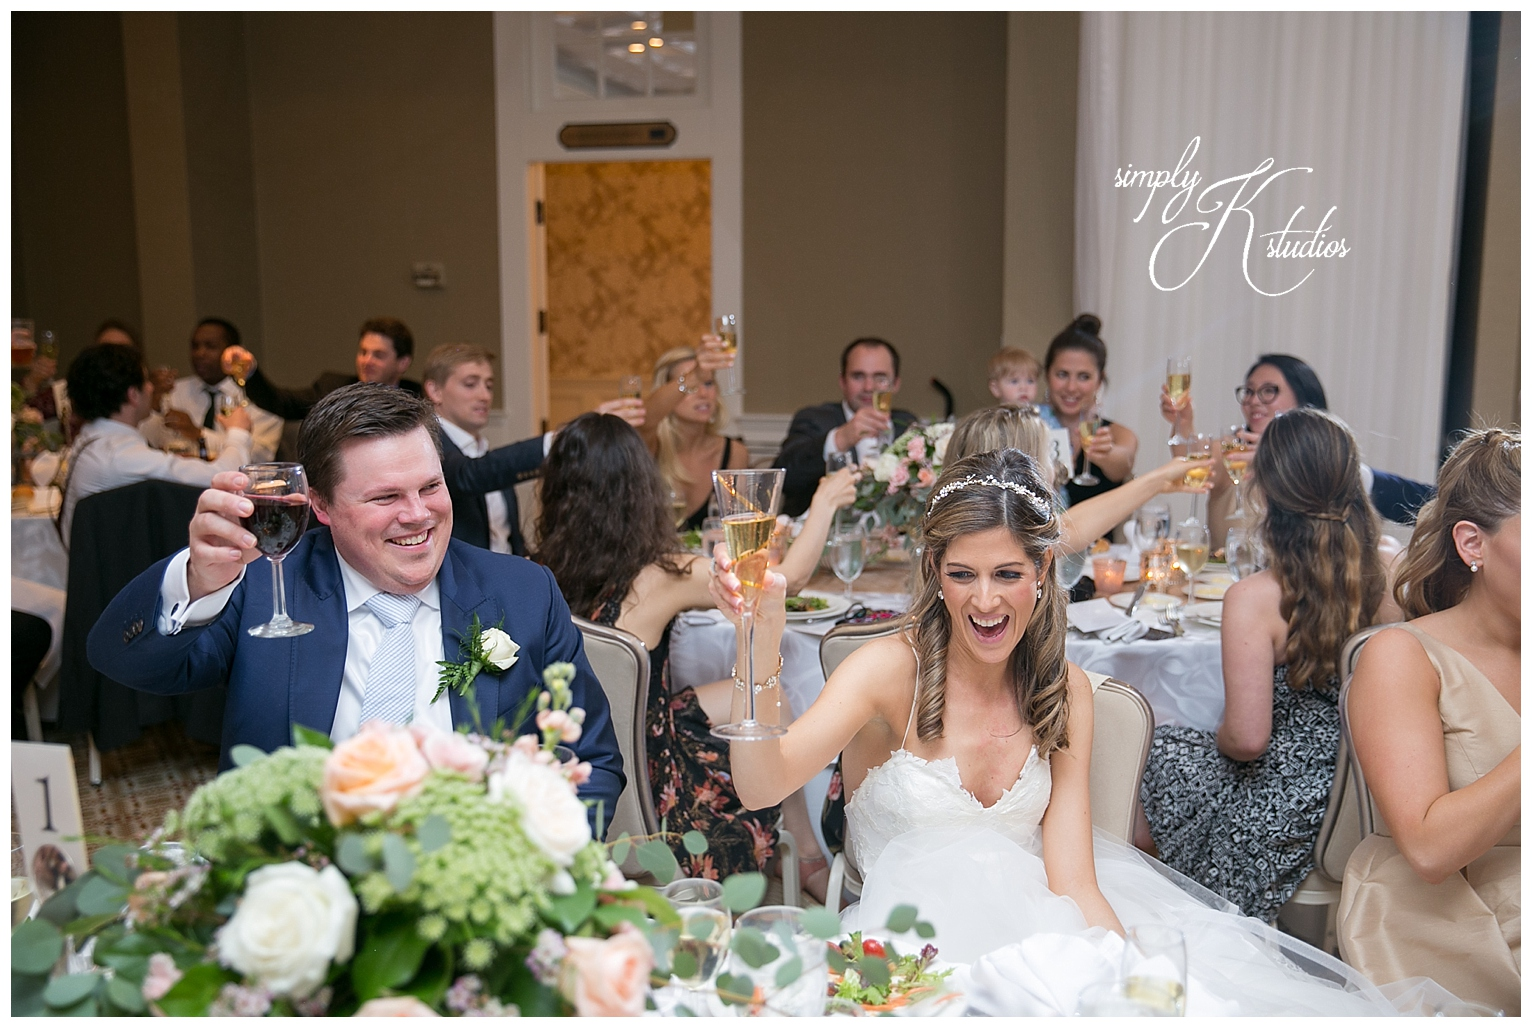 Wedding Reception at The Simsbury Inn.jpg